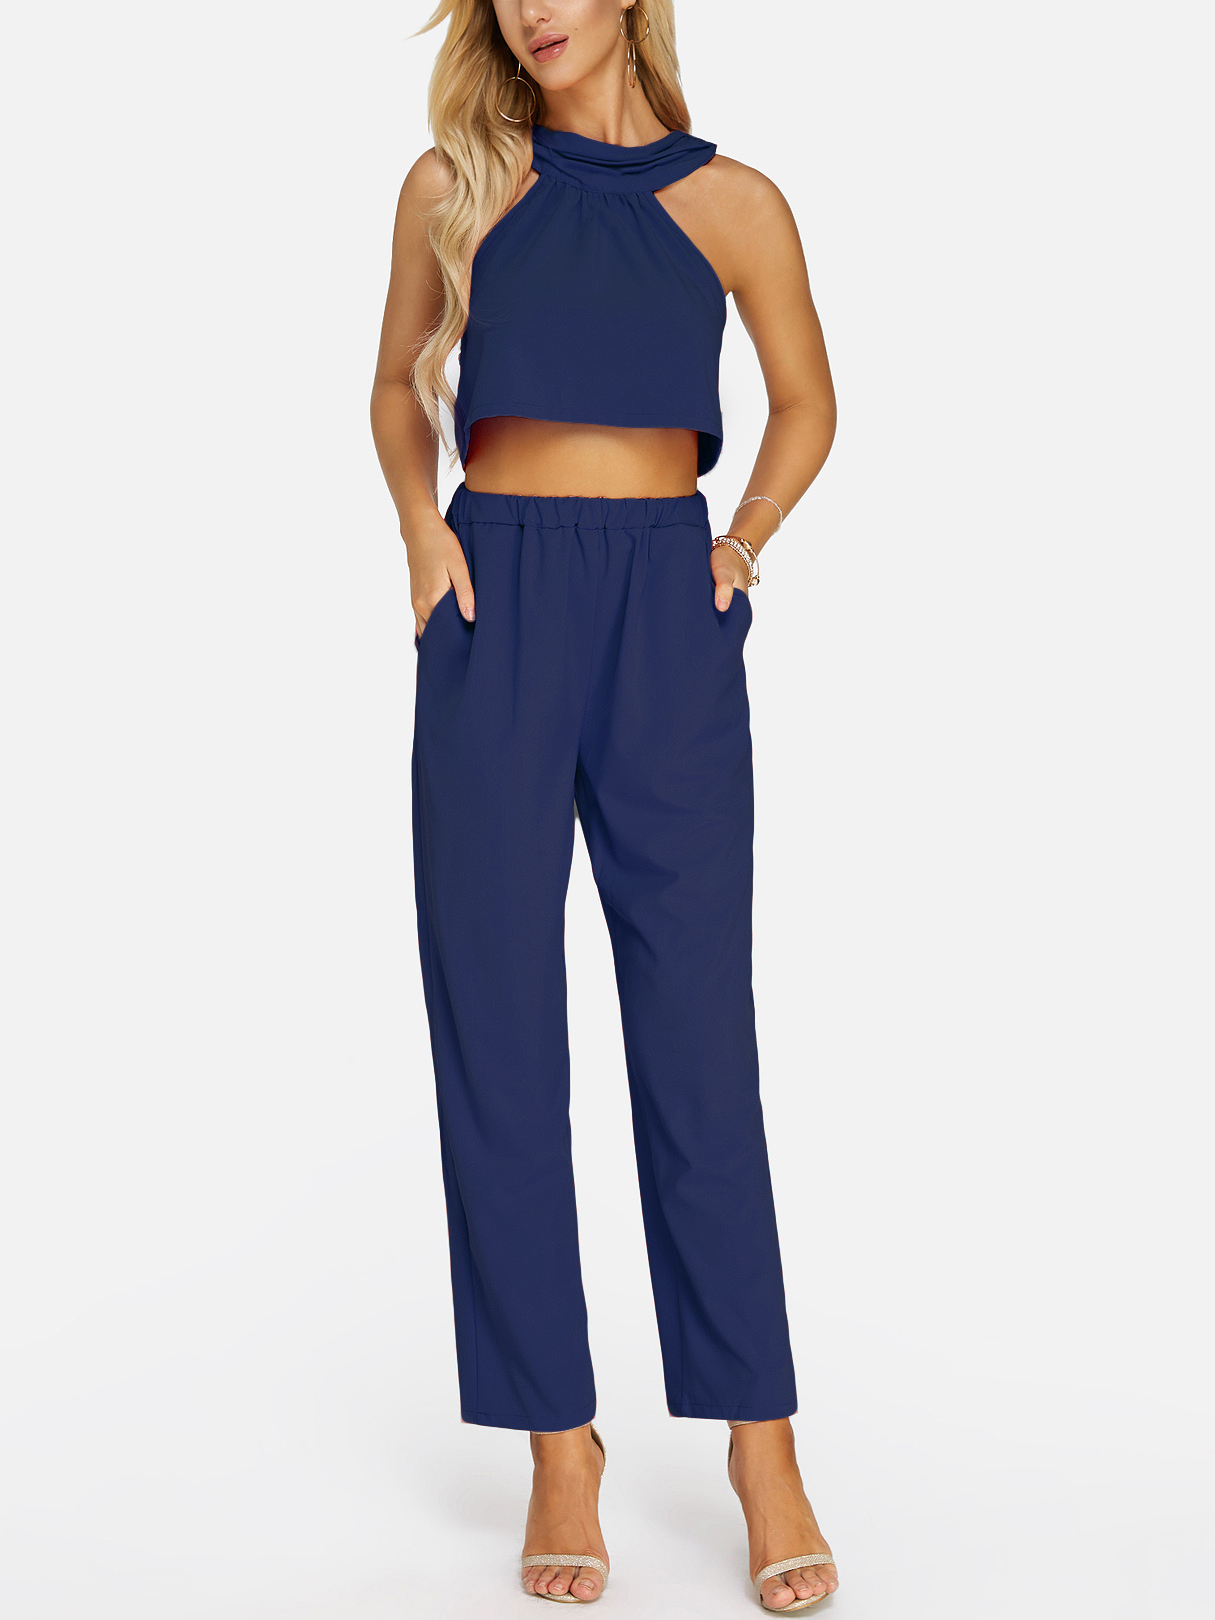 Dark Blue Sleeveless High Waist Halter Co-ord burgundy tube top and trumpet trousers co ord